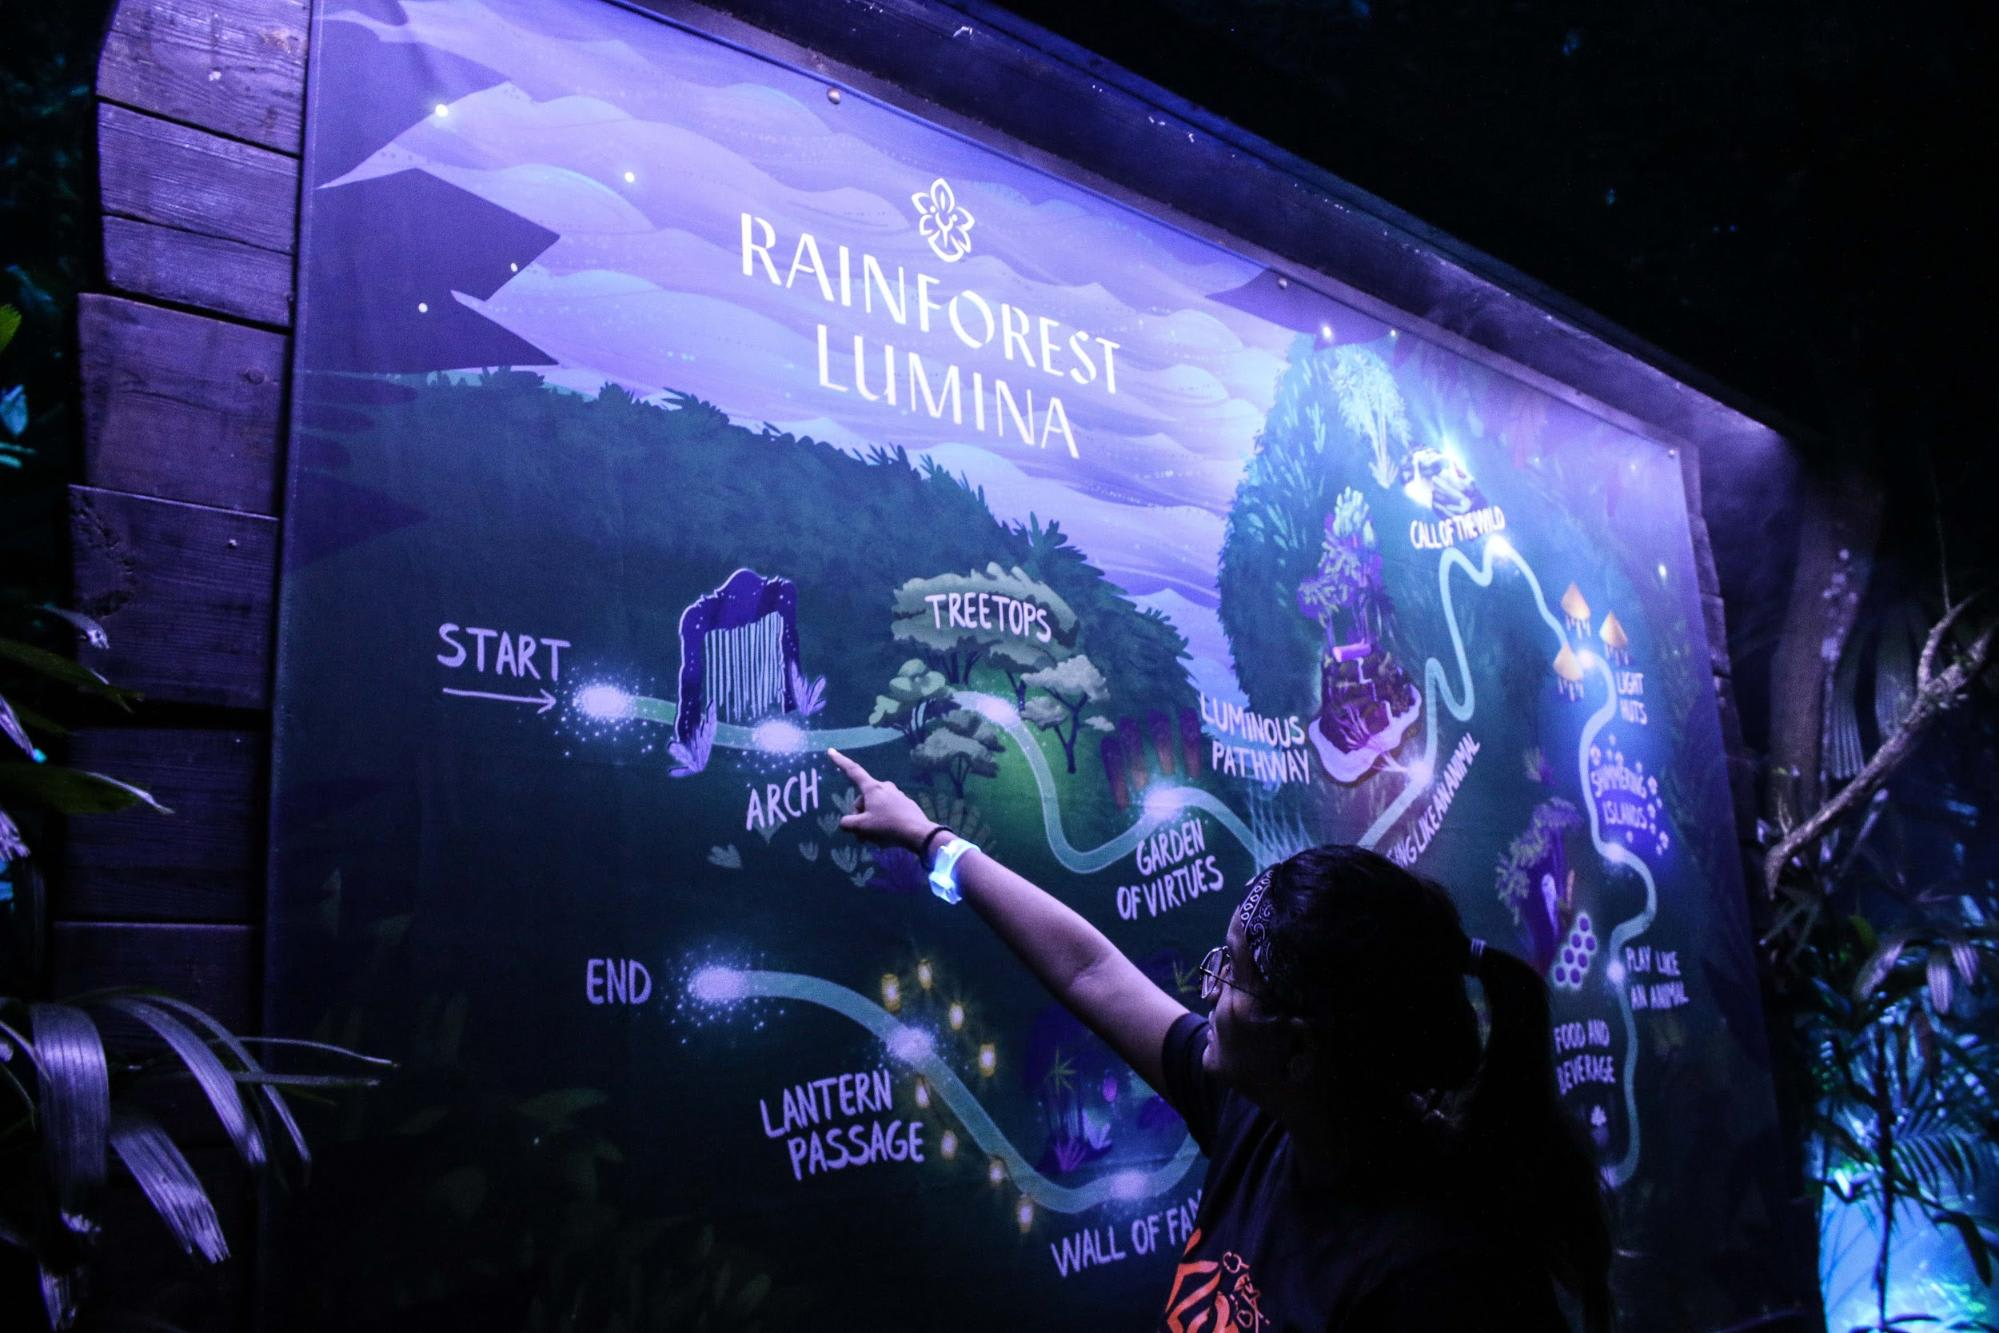 Rainforest Lumina Singapore Zoo Map